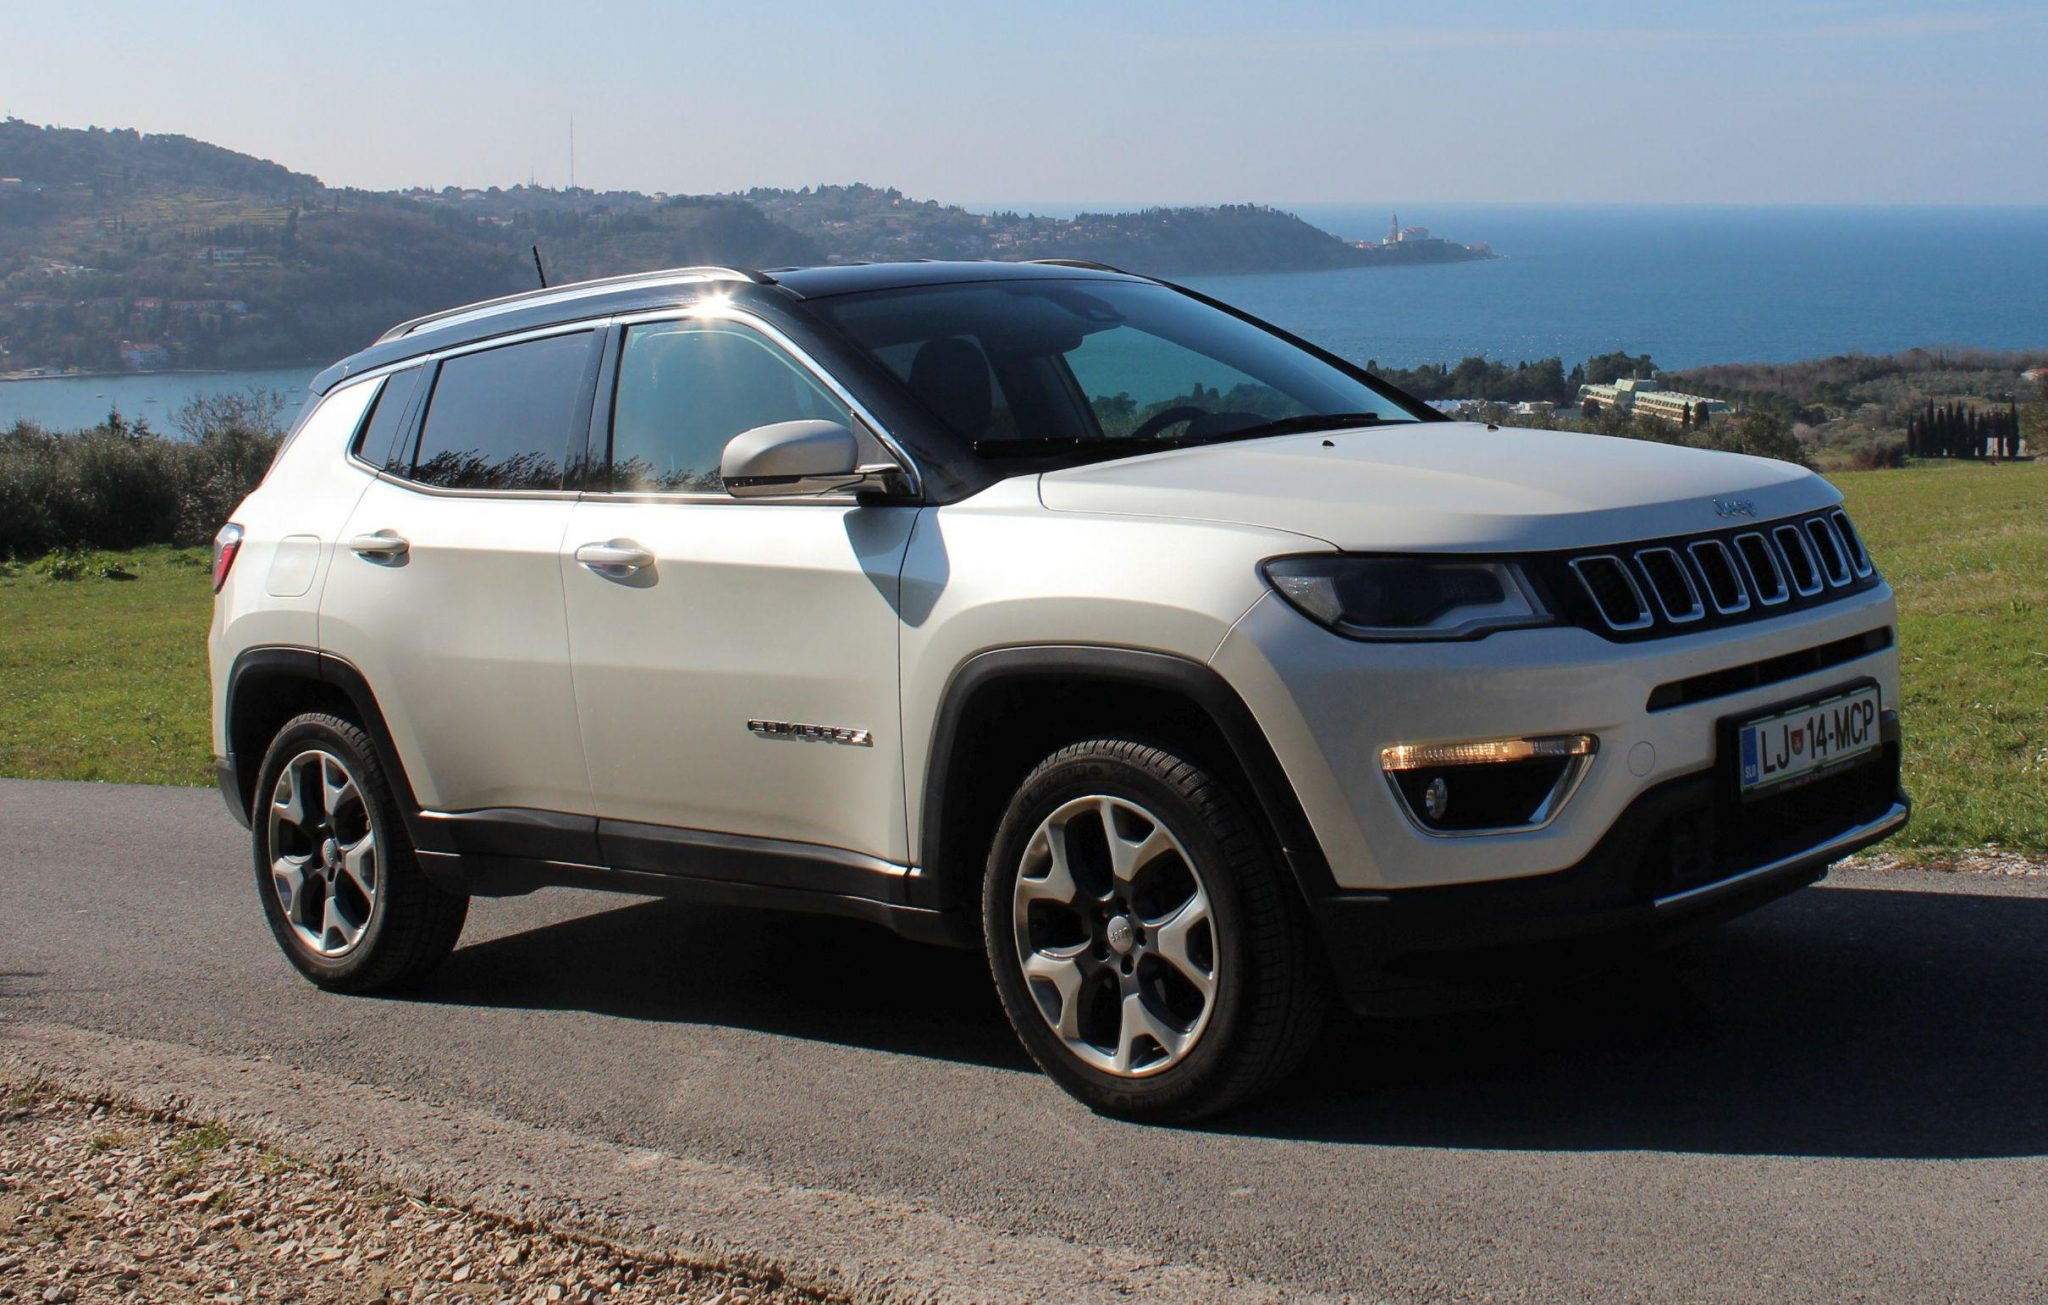 jeep compass 2 0 multijet 140 cv limited 4wd at9 - srednji sinonim za pravi jeep